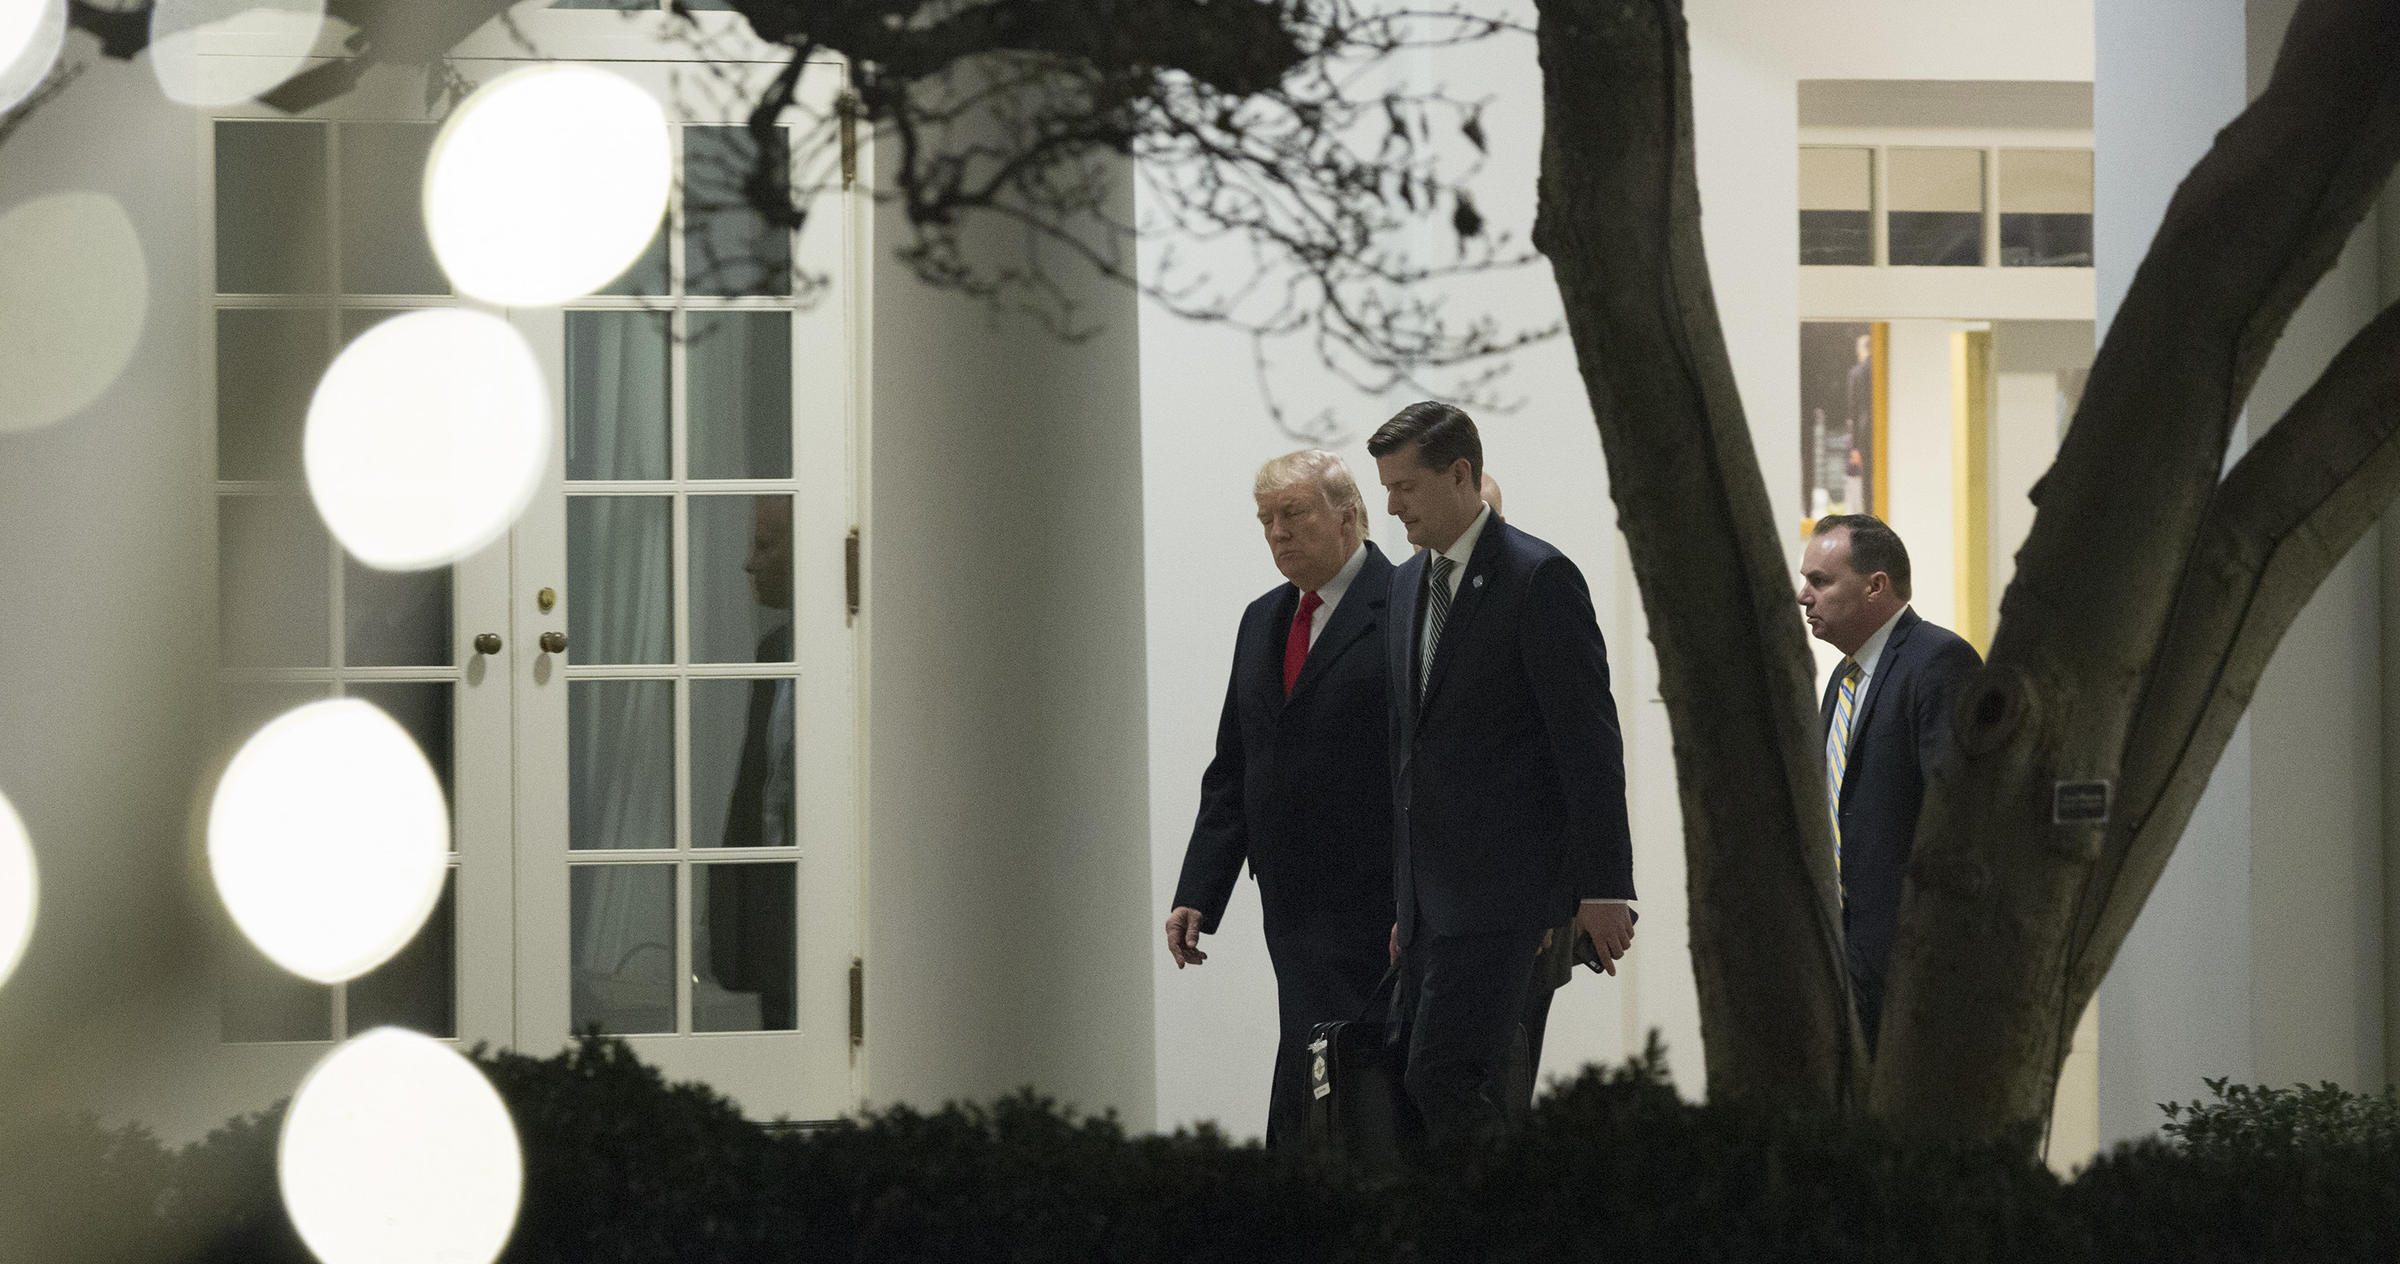 Trump wishes Rob Porter well after resignation